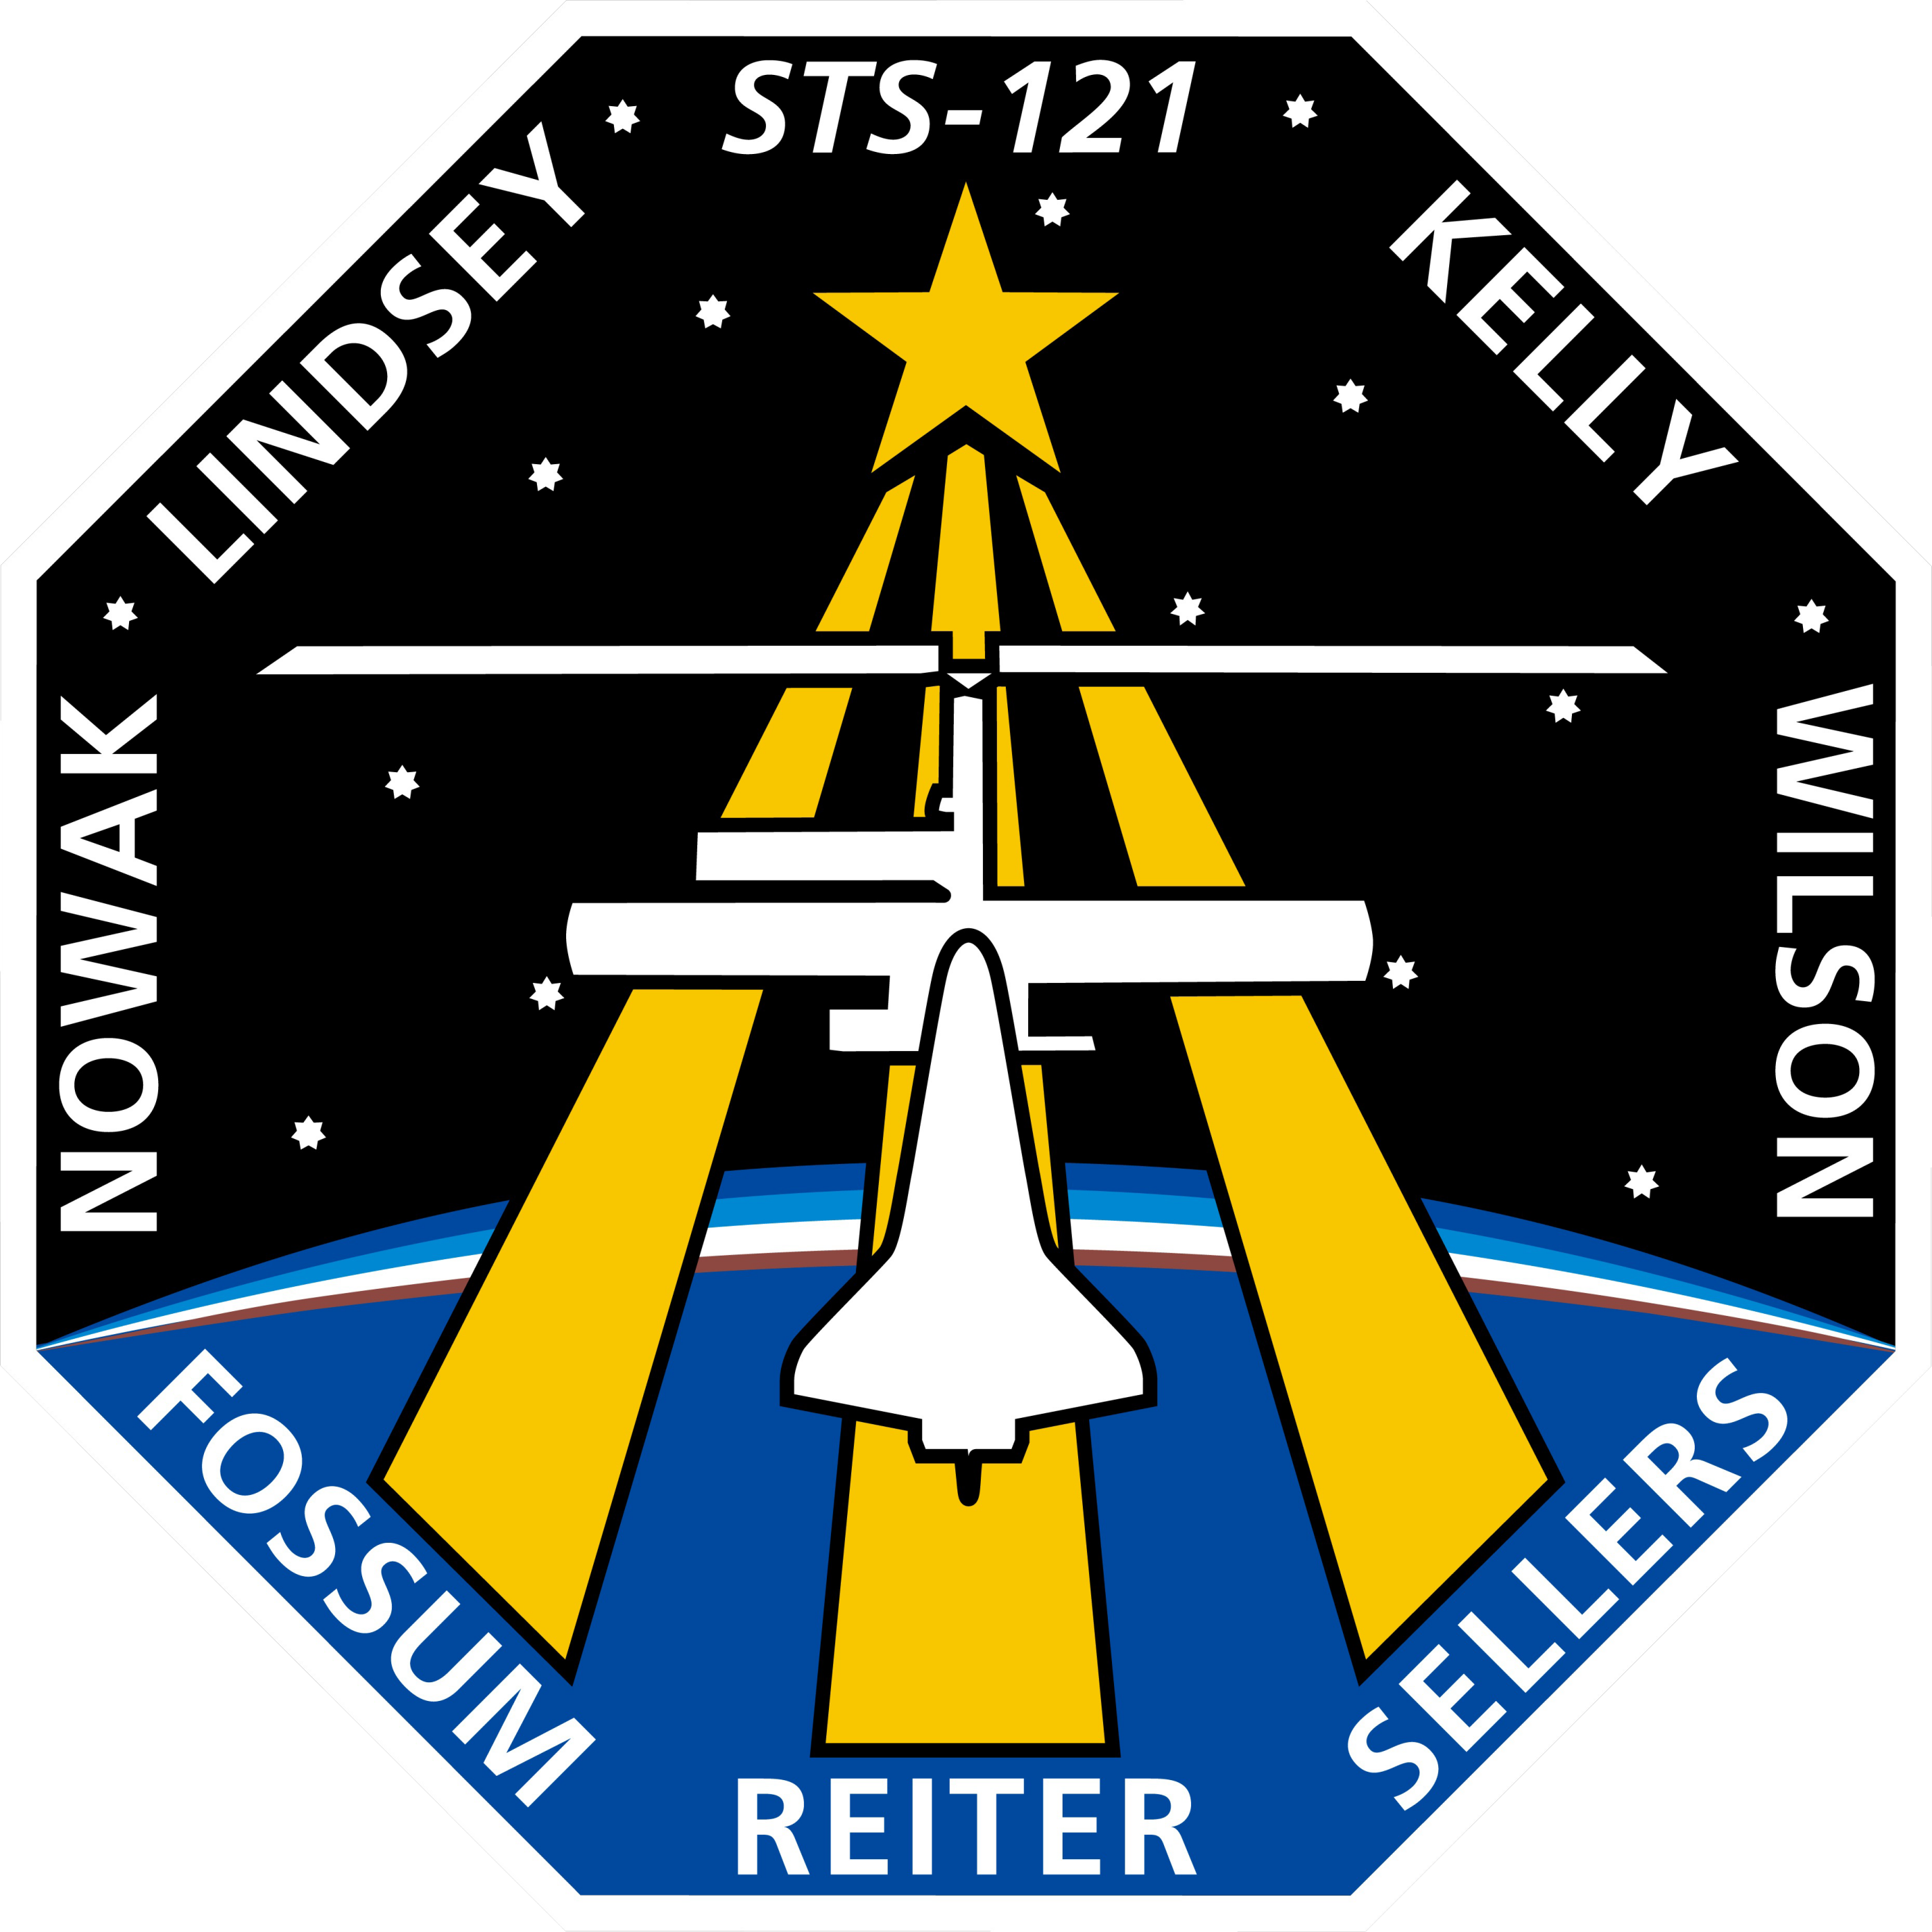 http://upload.wikimedia.org/wikipedia/commons/d/de/STS-121_patch.png